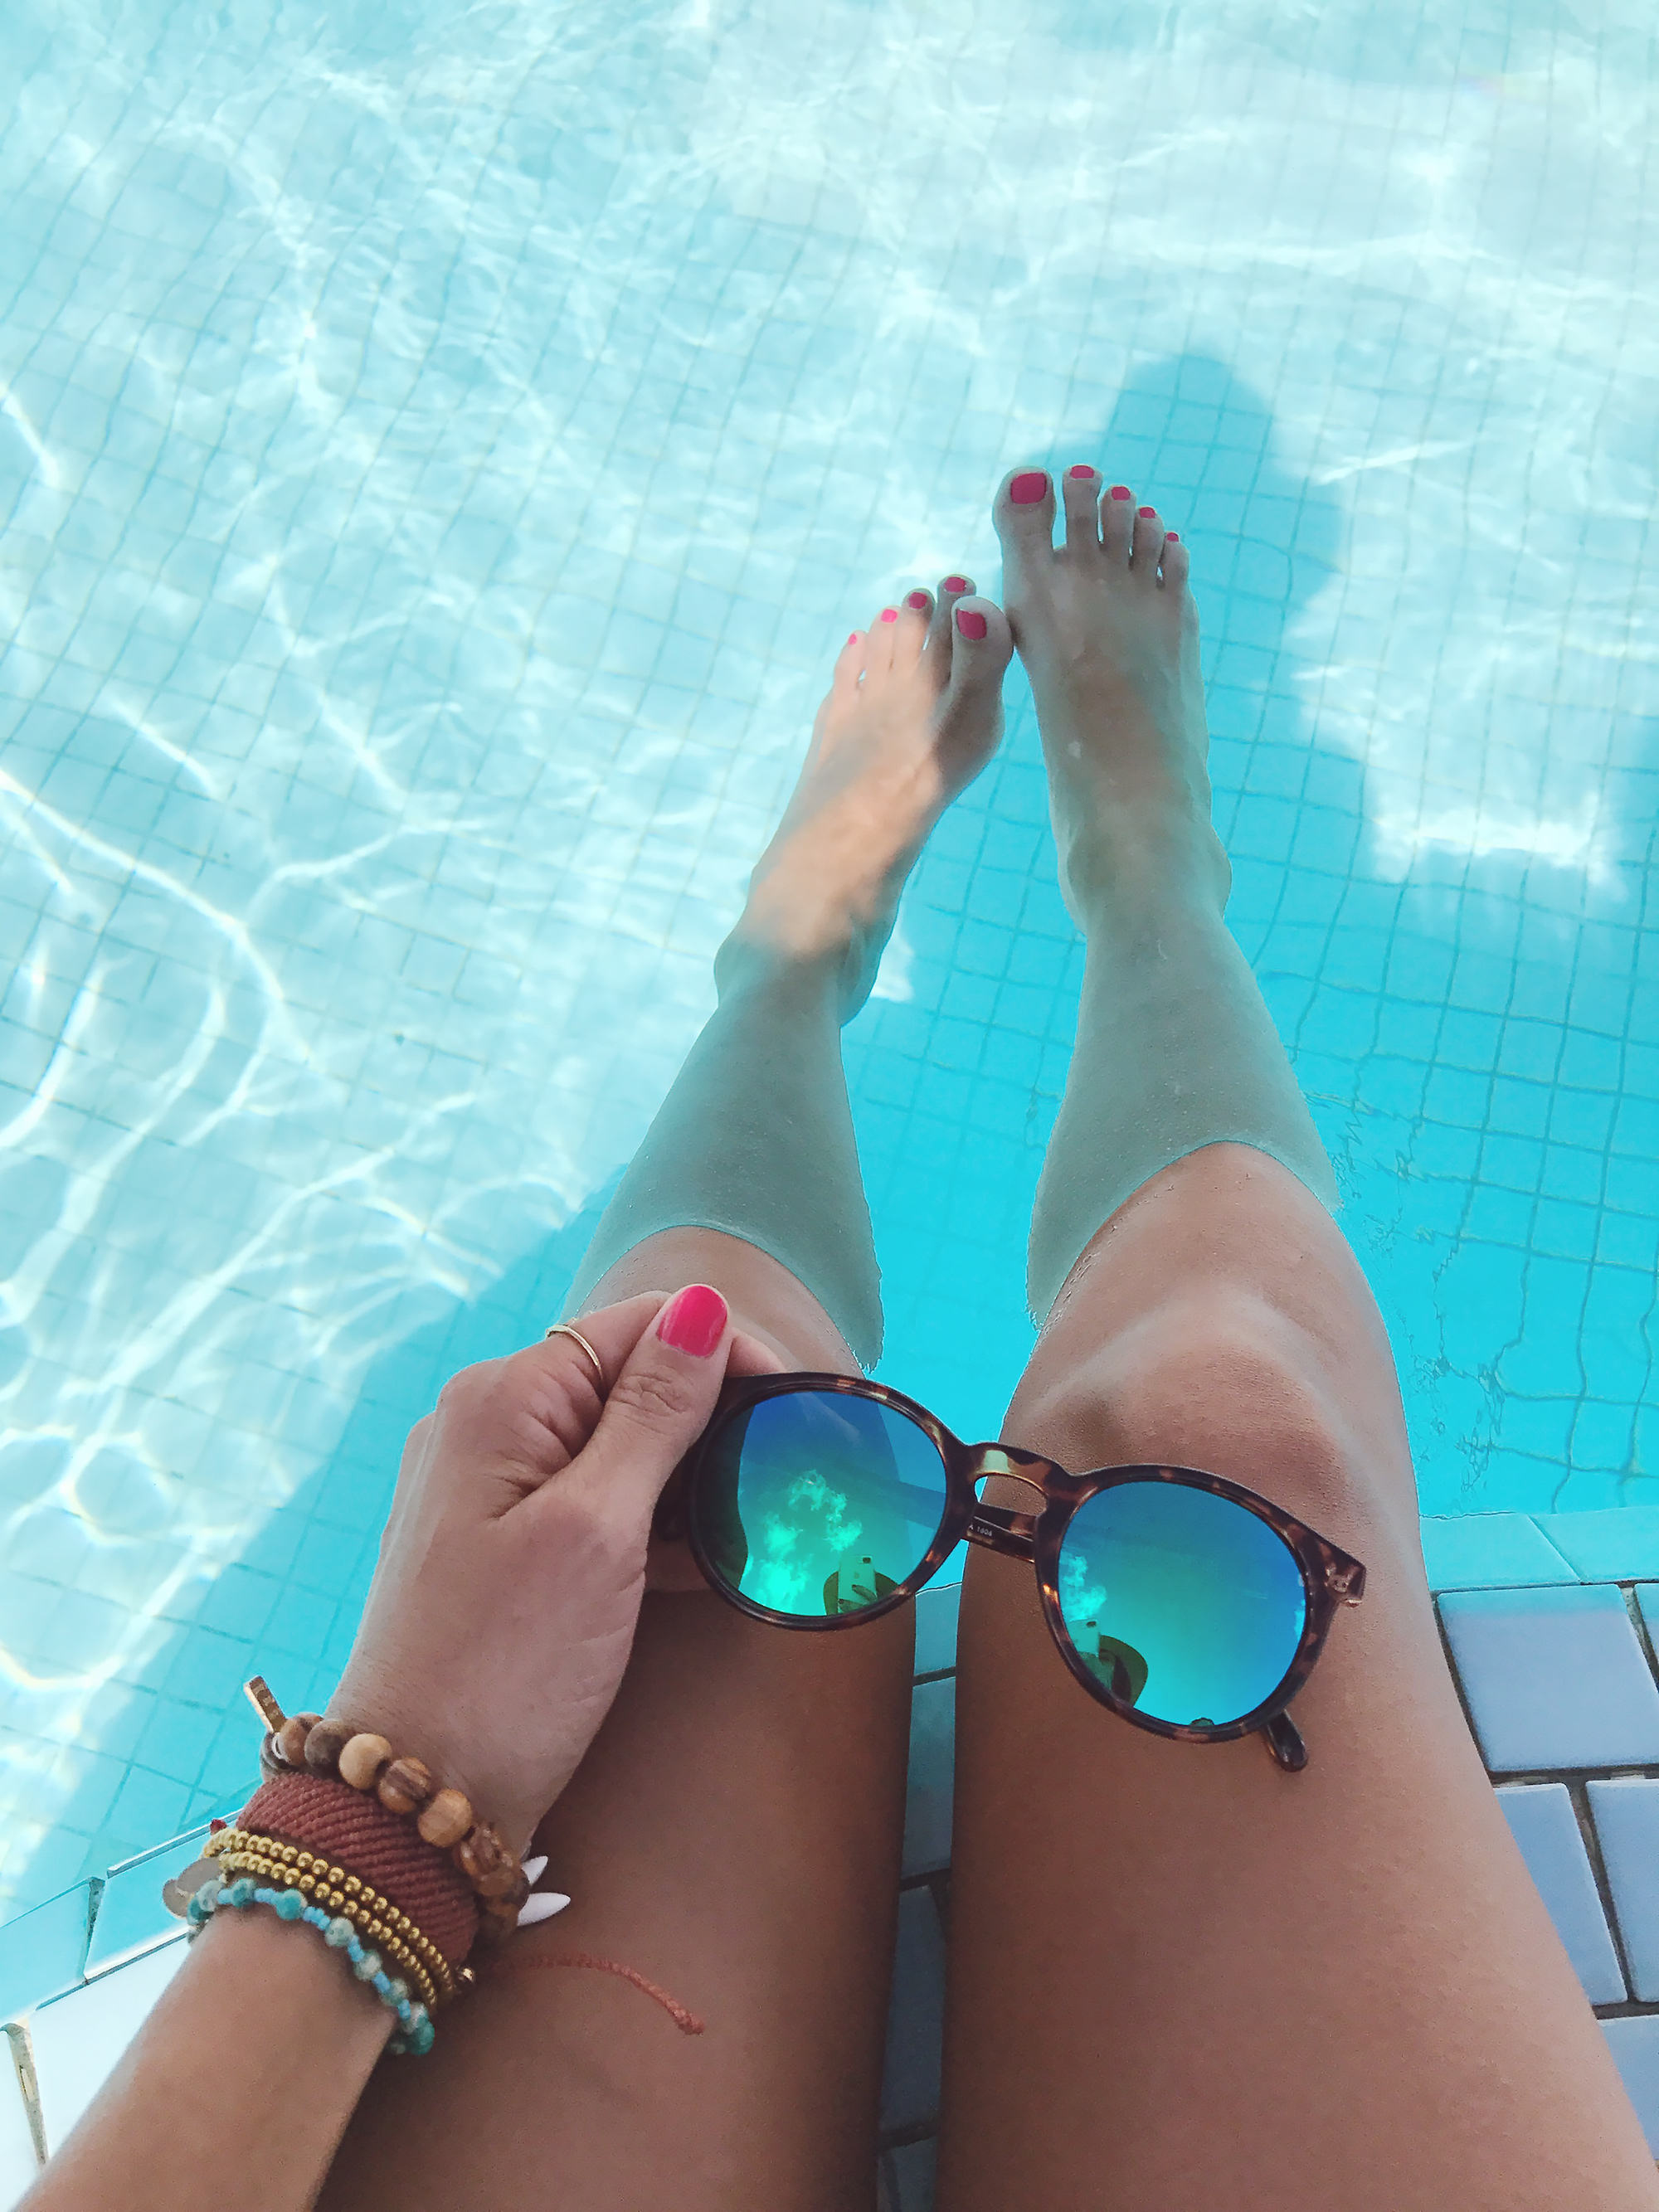 Love Life Jewelry and Sunskis, perfect for a beach vacation.